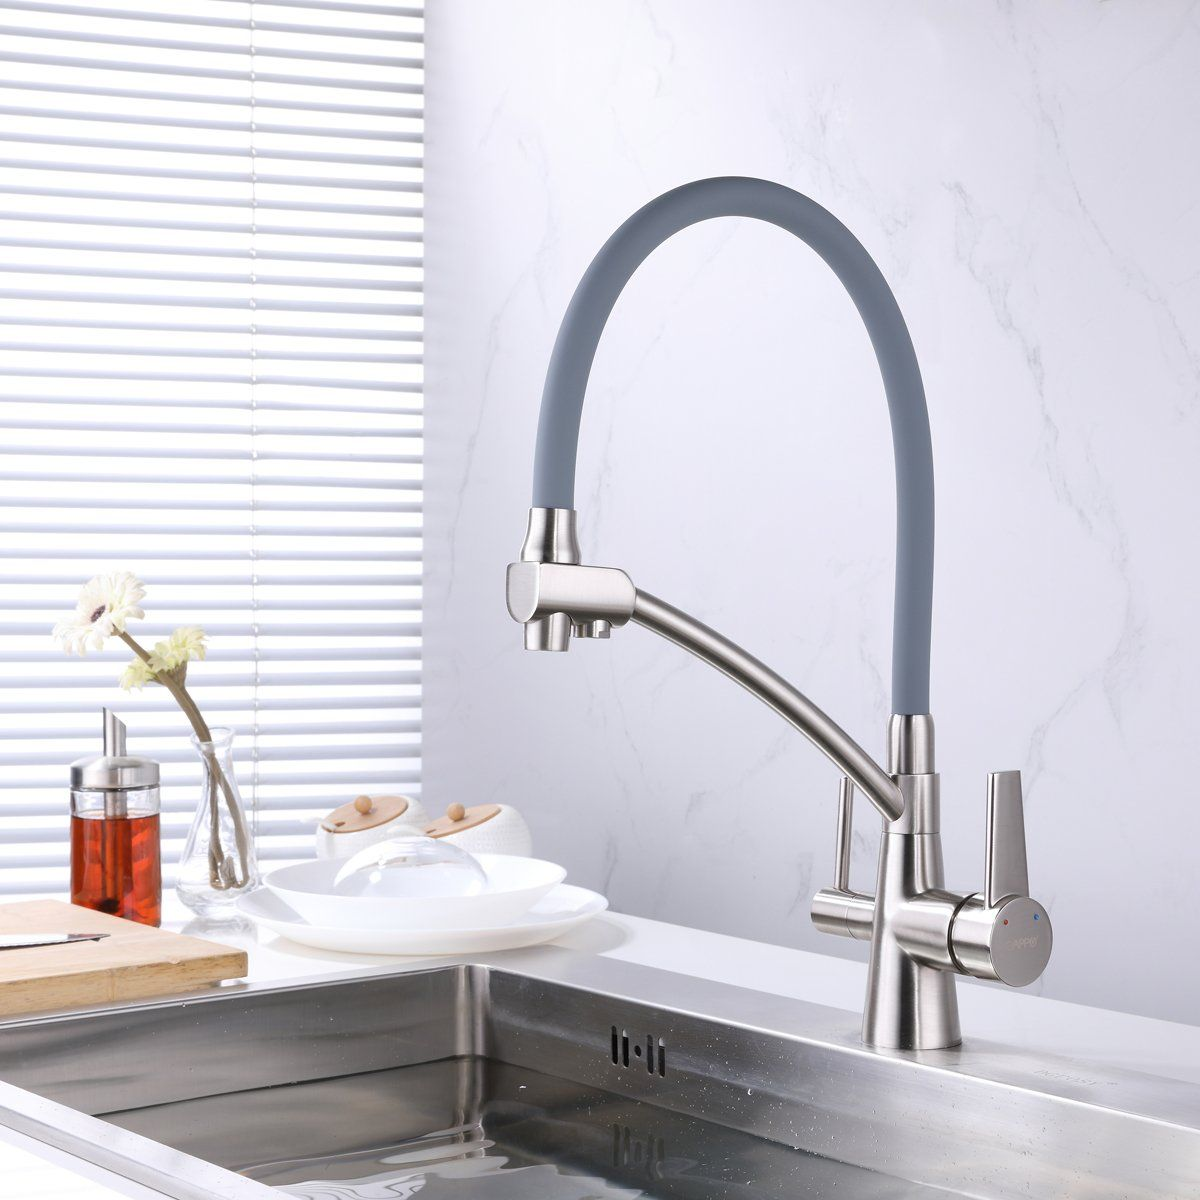 Gappo Pull Out Kitchen Faucet With Lead Free Drink Water Filter Function Brushed Nickel Check Out The Image By Visi With Images Pull Out Kitchen Faucet Kitchen Sink Taps